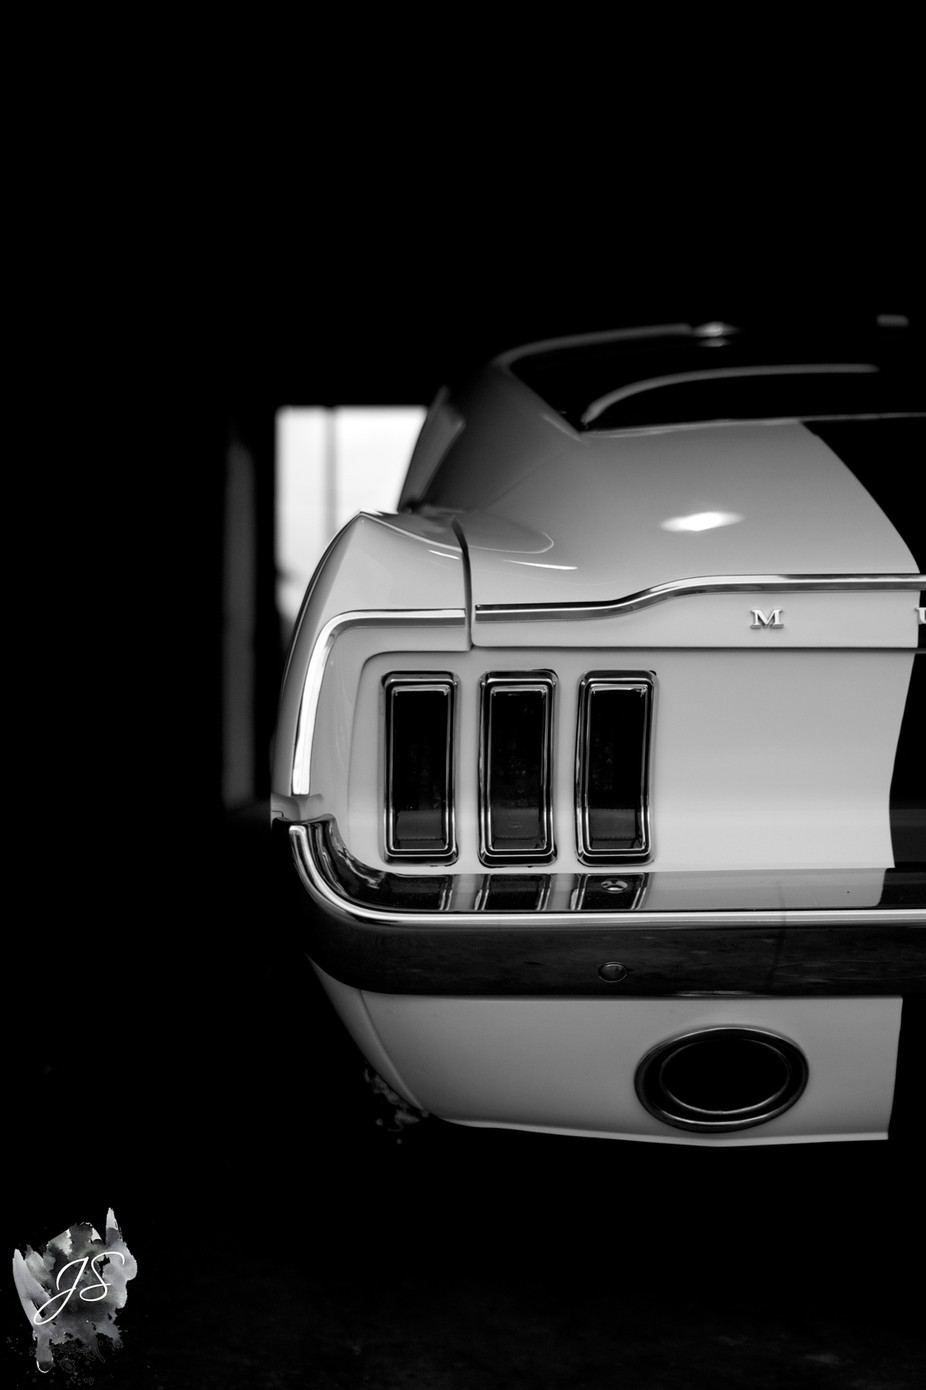 Fastback Tail by joshuashannon - My Favorite Car Photo Contest